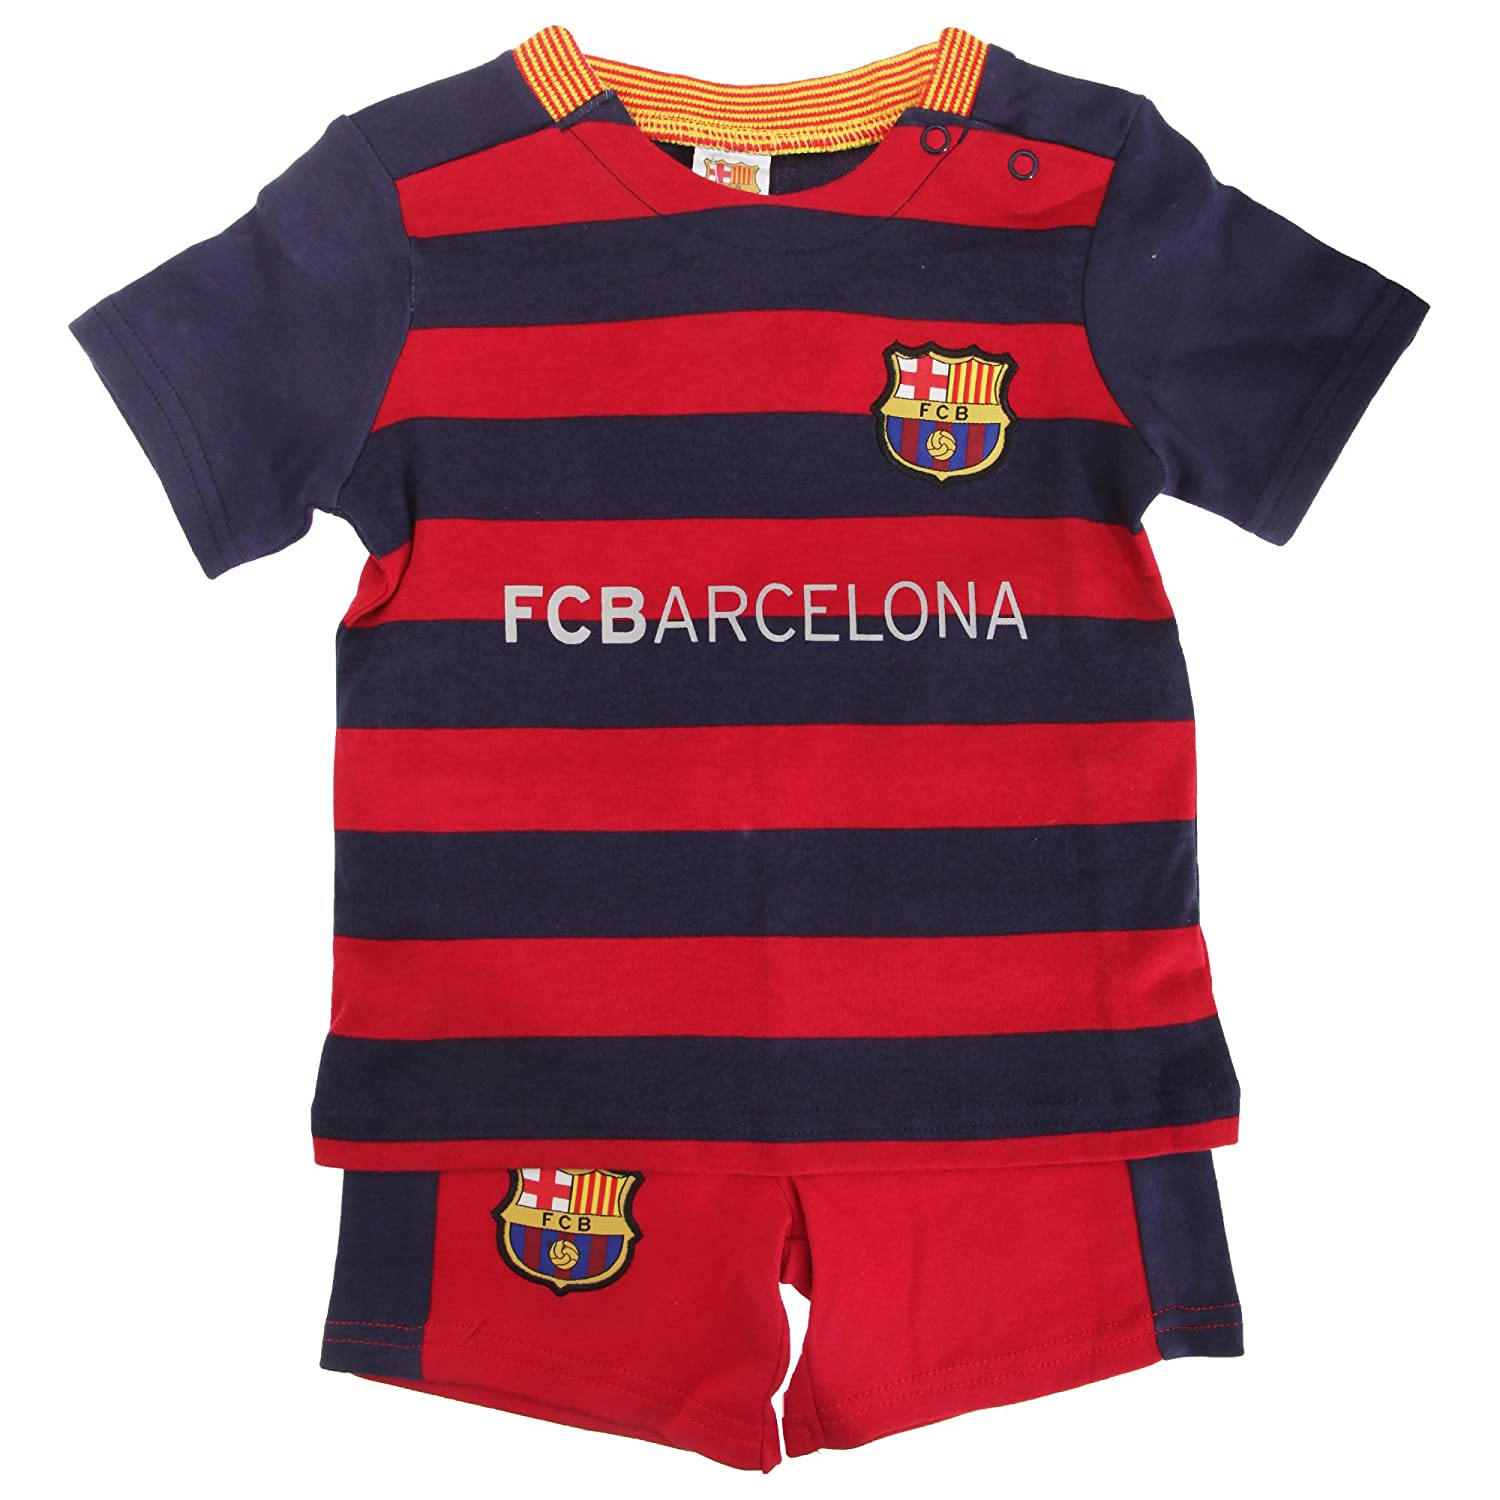 Barcelona FC Official 2015//16 Football Kit Baby Shirt and Shorts Set 12-18 Months